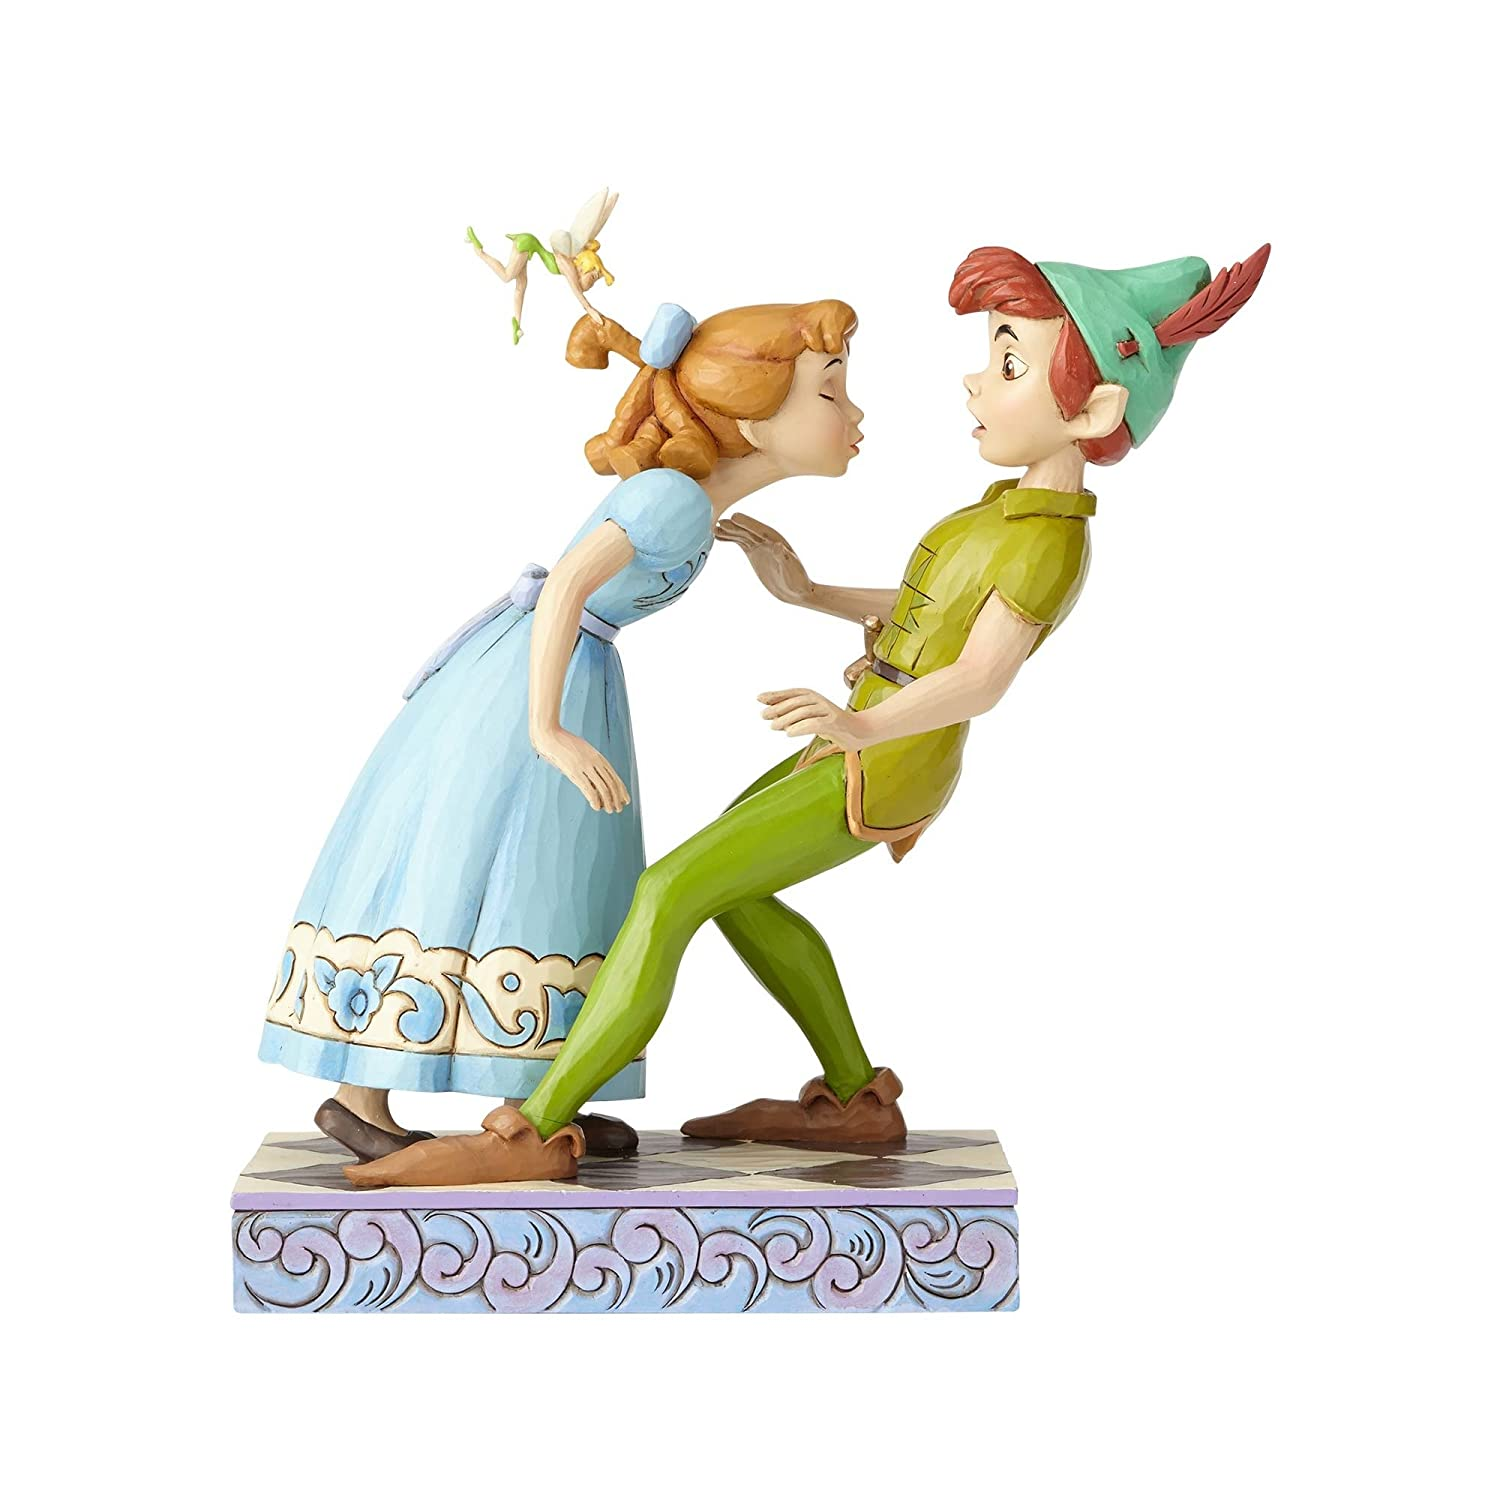 Disney Traditions An Unexpected Kiss Peter Pan and Wendy Figurine, Resin, Multi-Colour, 170 x 110 x 190 cm Enesco 4059725